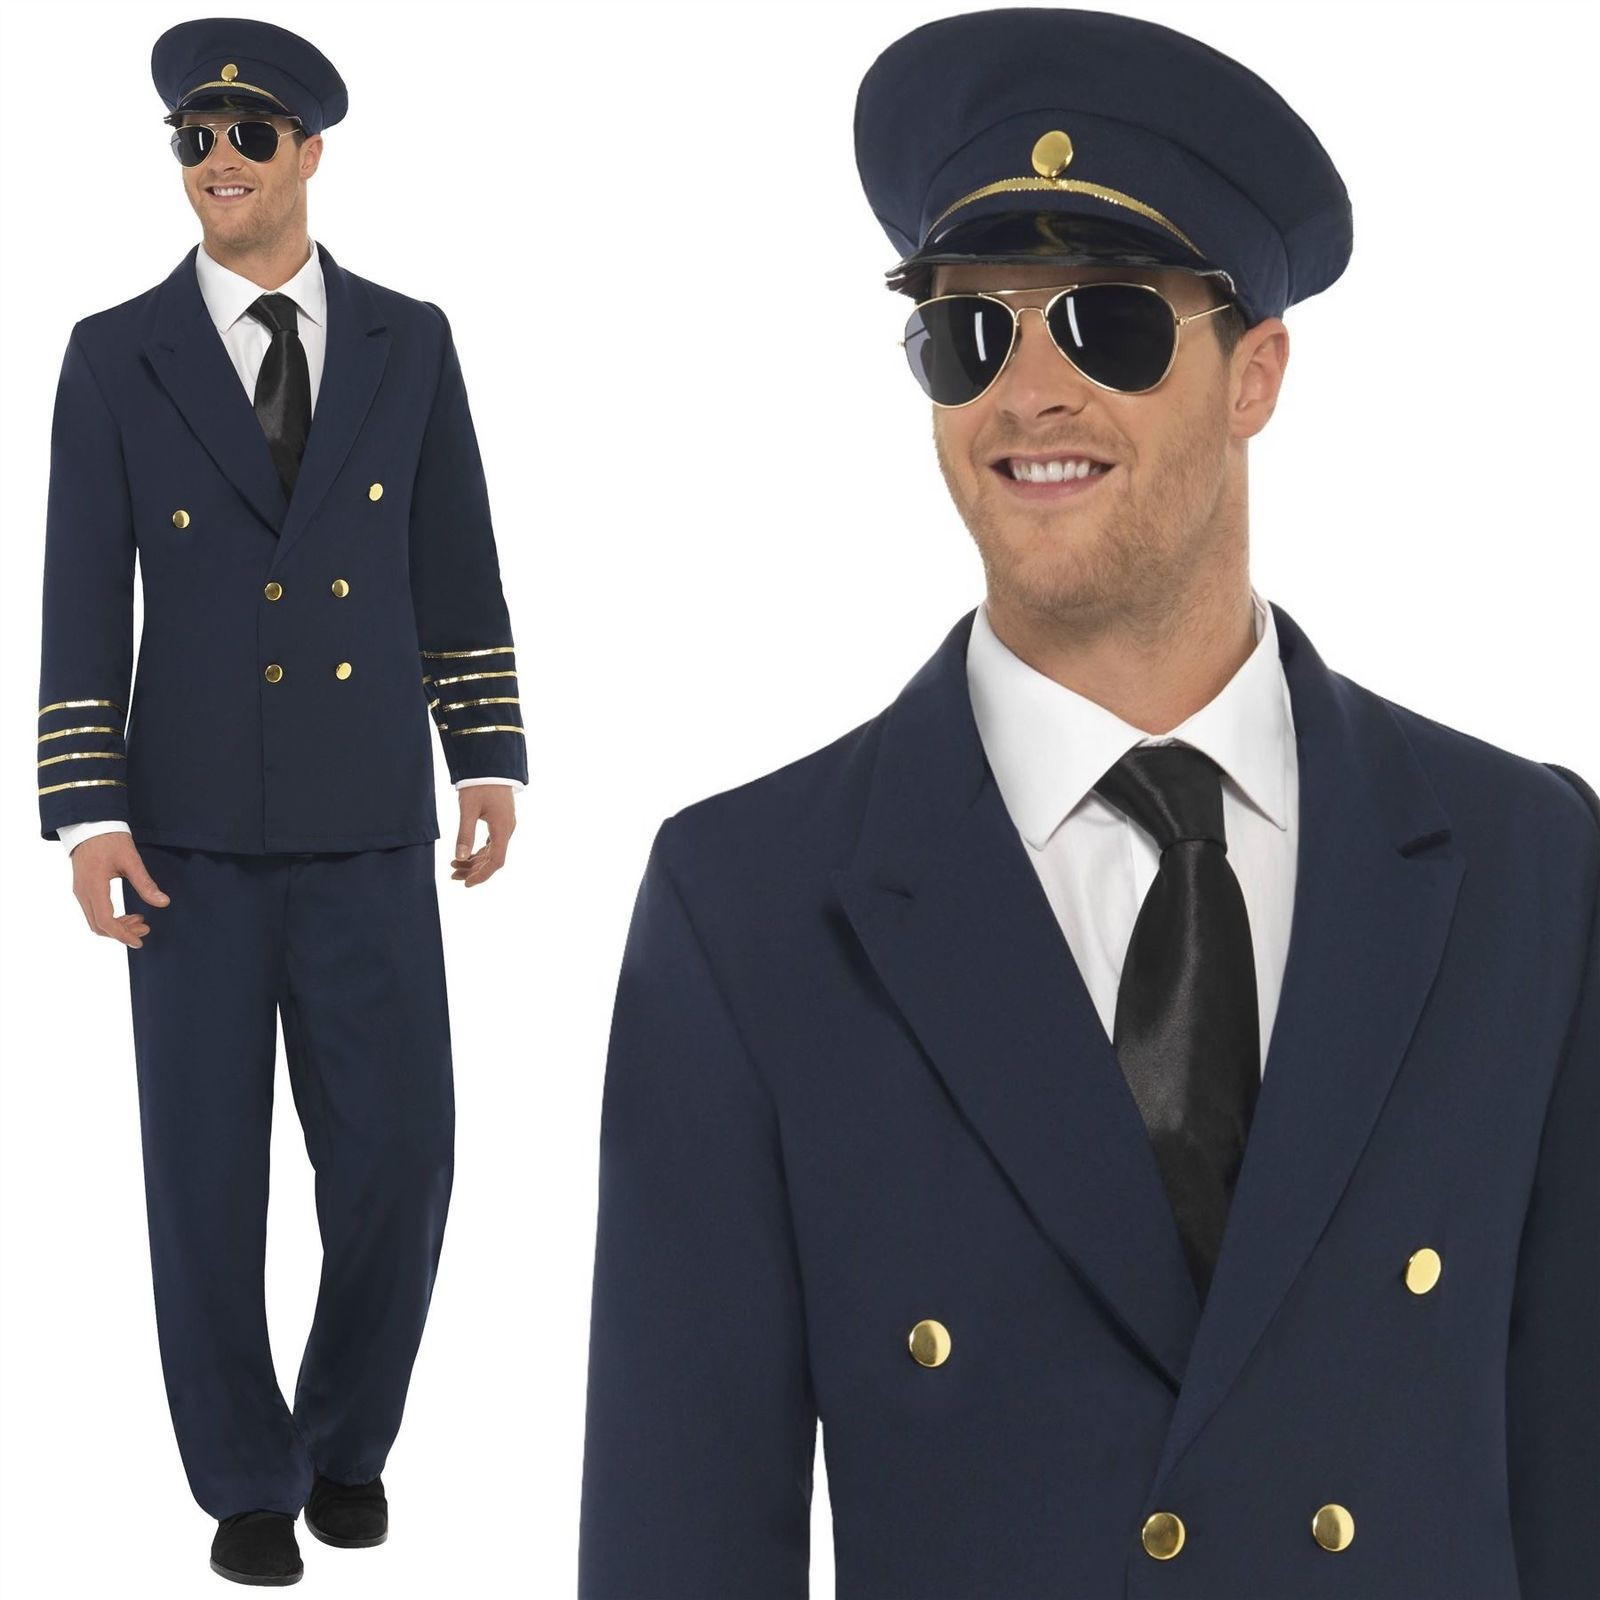 MENS/UNIFORMS/Pilot Costume, Navy Blue